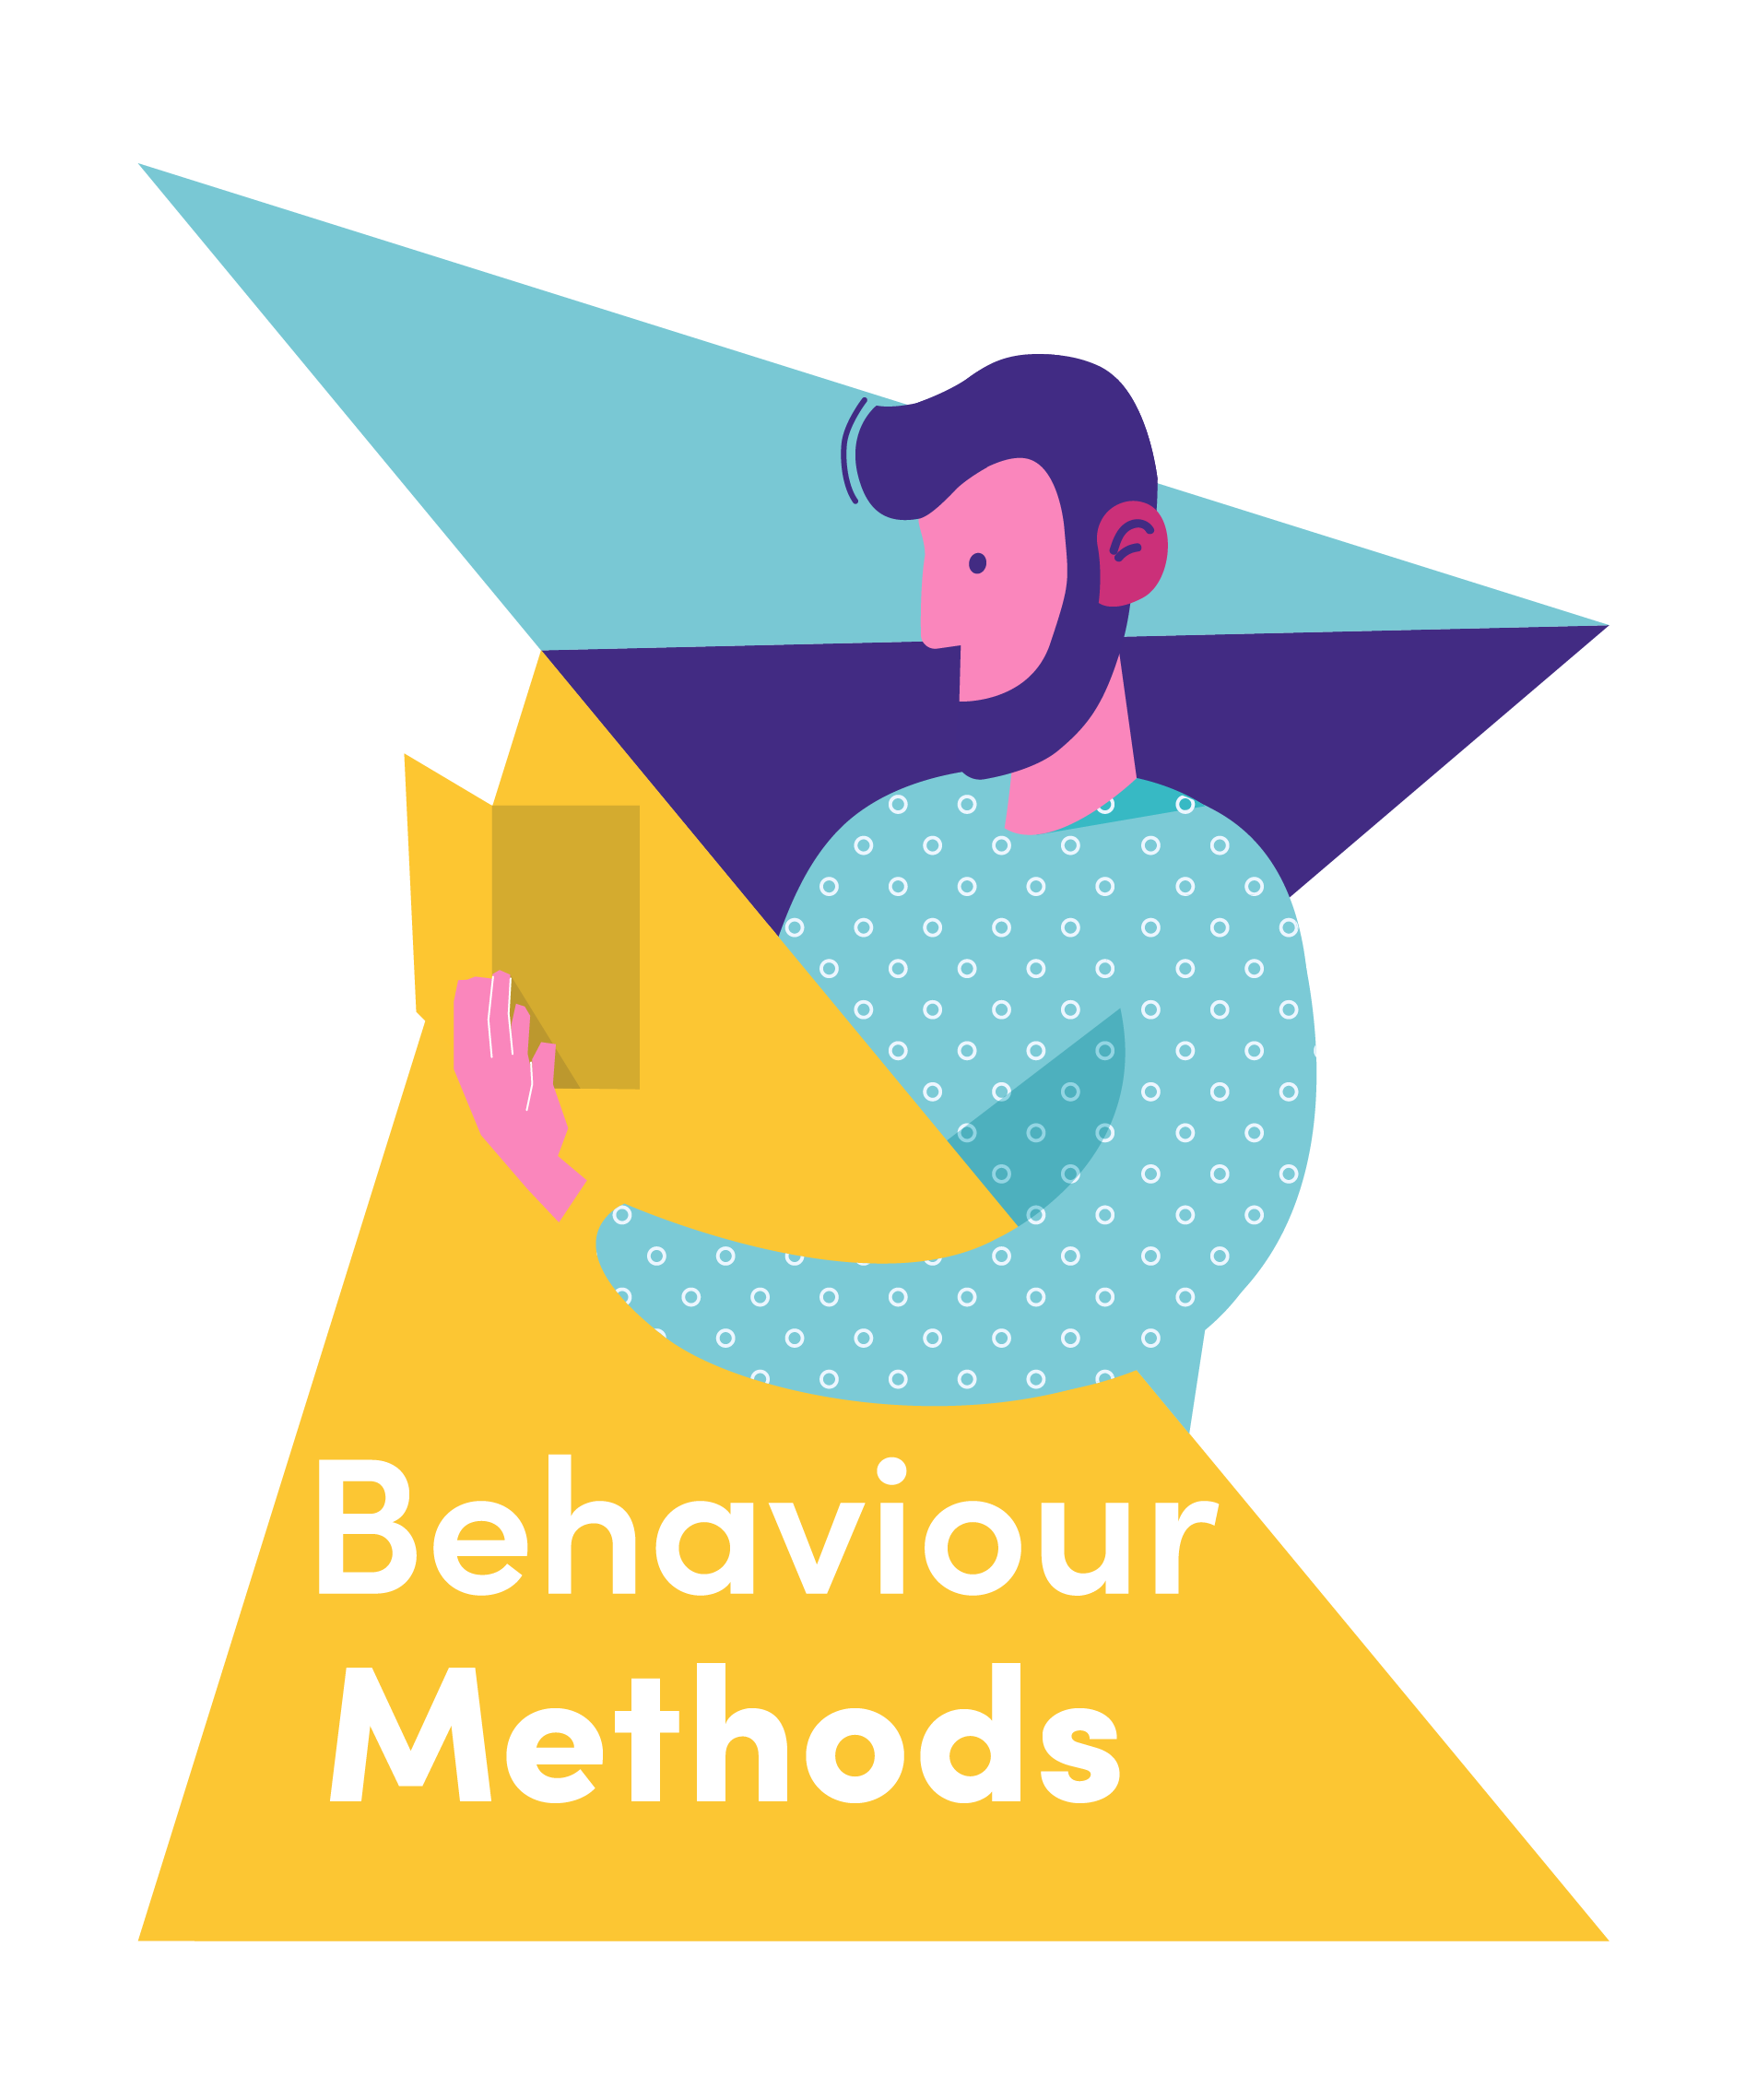 Latest methods, advice and insights to improve your craft using Behavioural science and start using Behaviour Design.